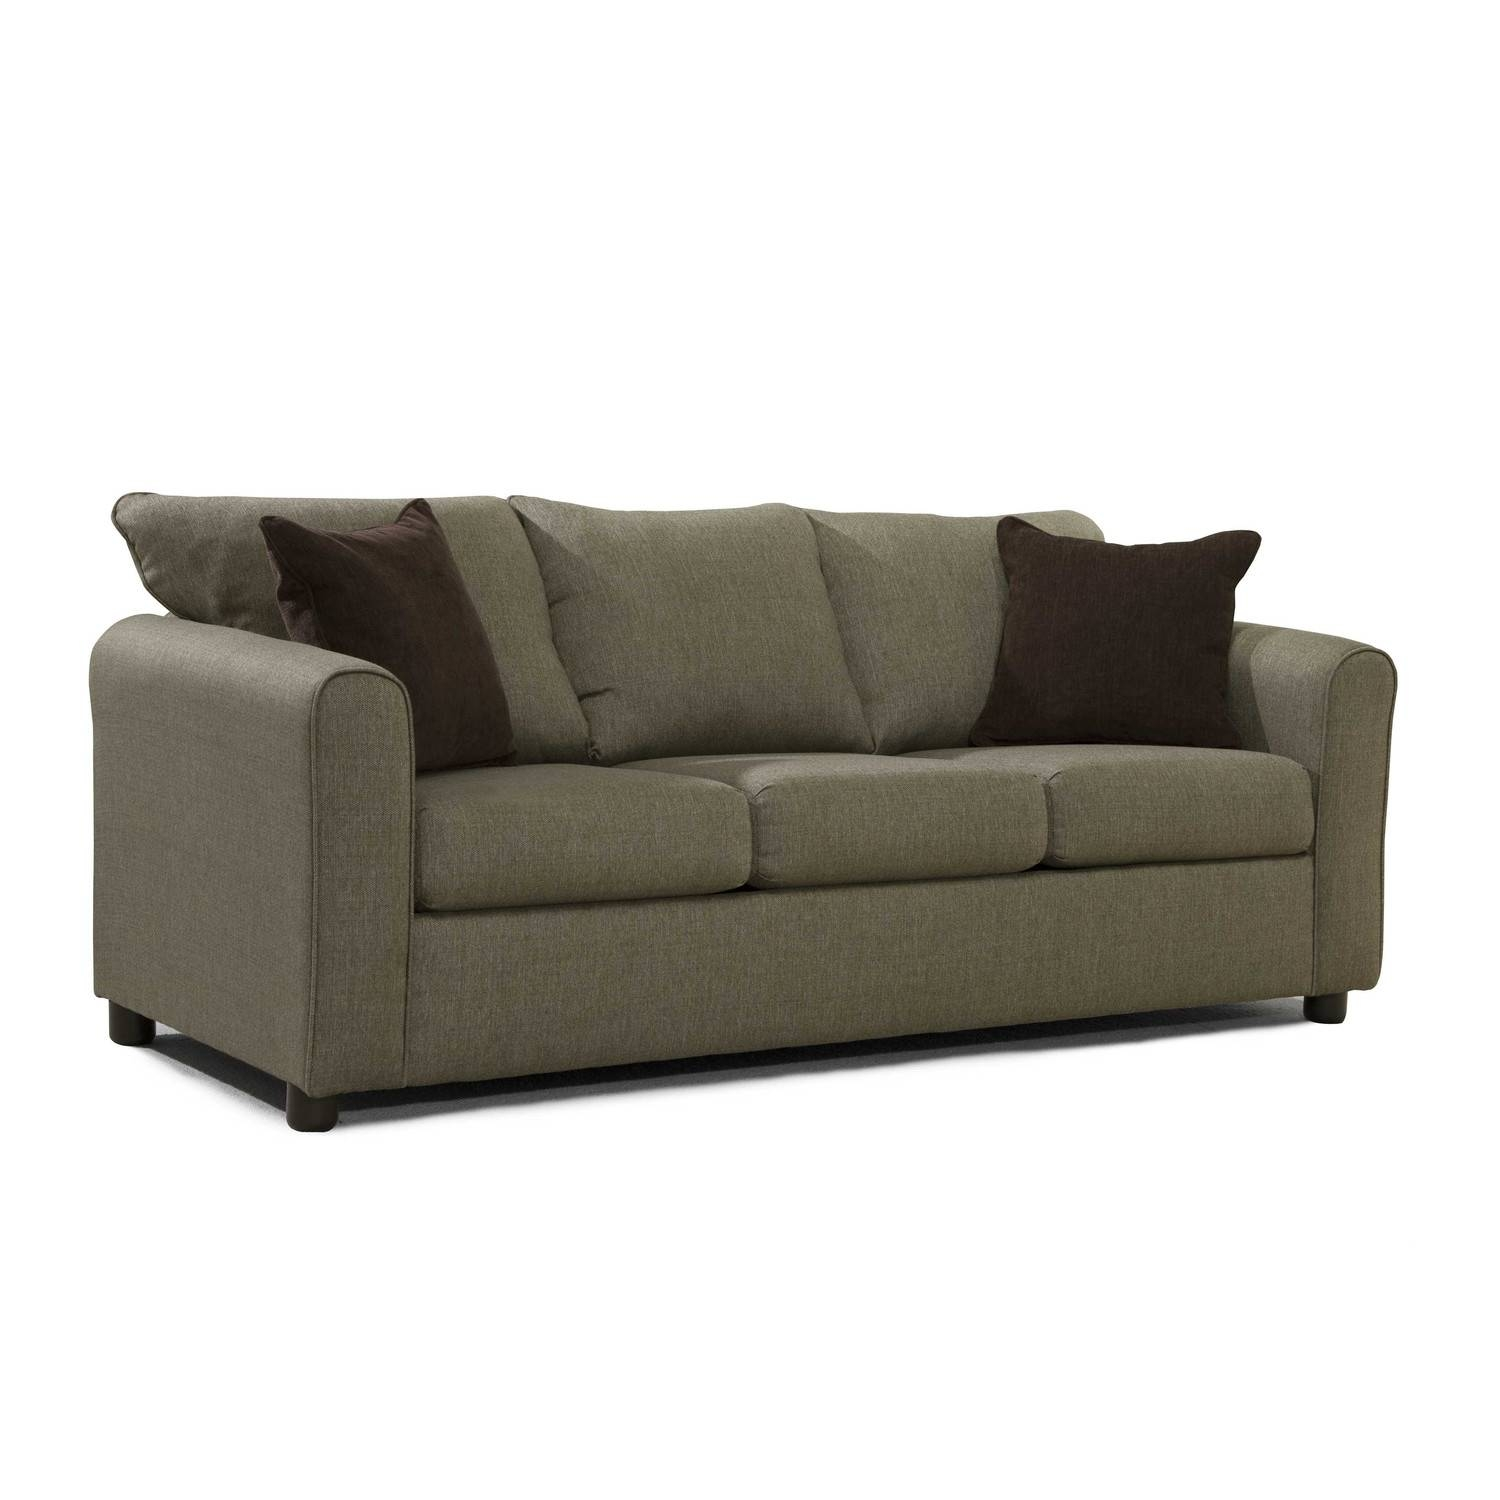 Furniture: Walmart Sofa Beds | Leather Futon Walmart | Futon Big Lots with Big Lots Sofa Bed (Image 19 of 30)